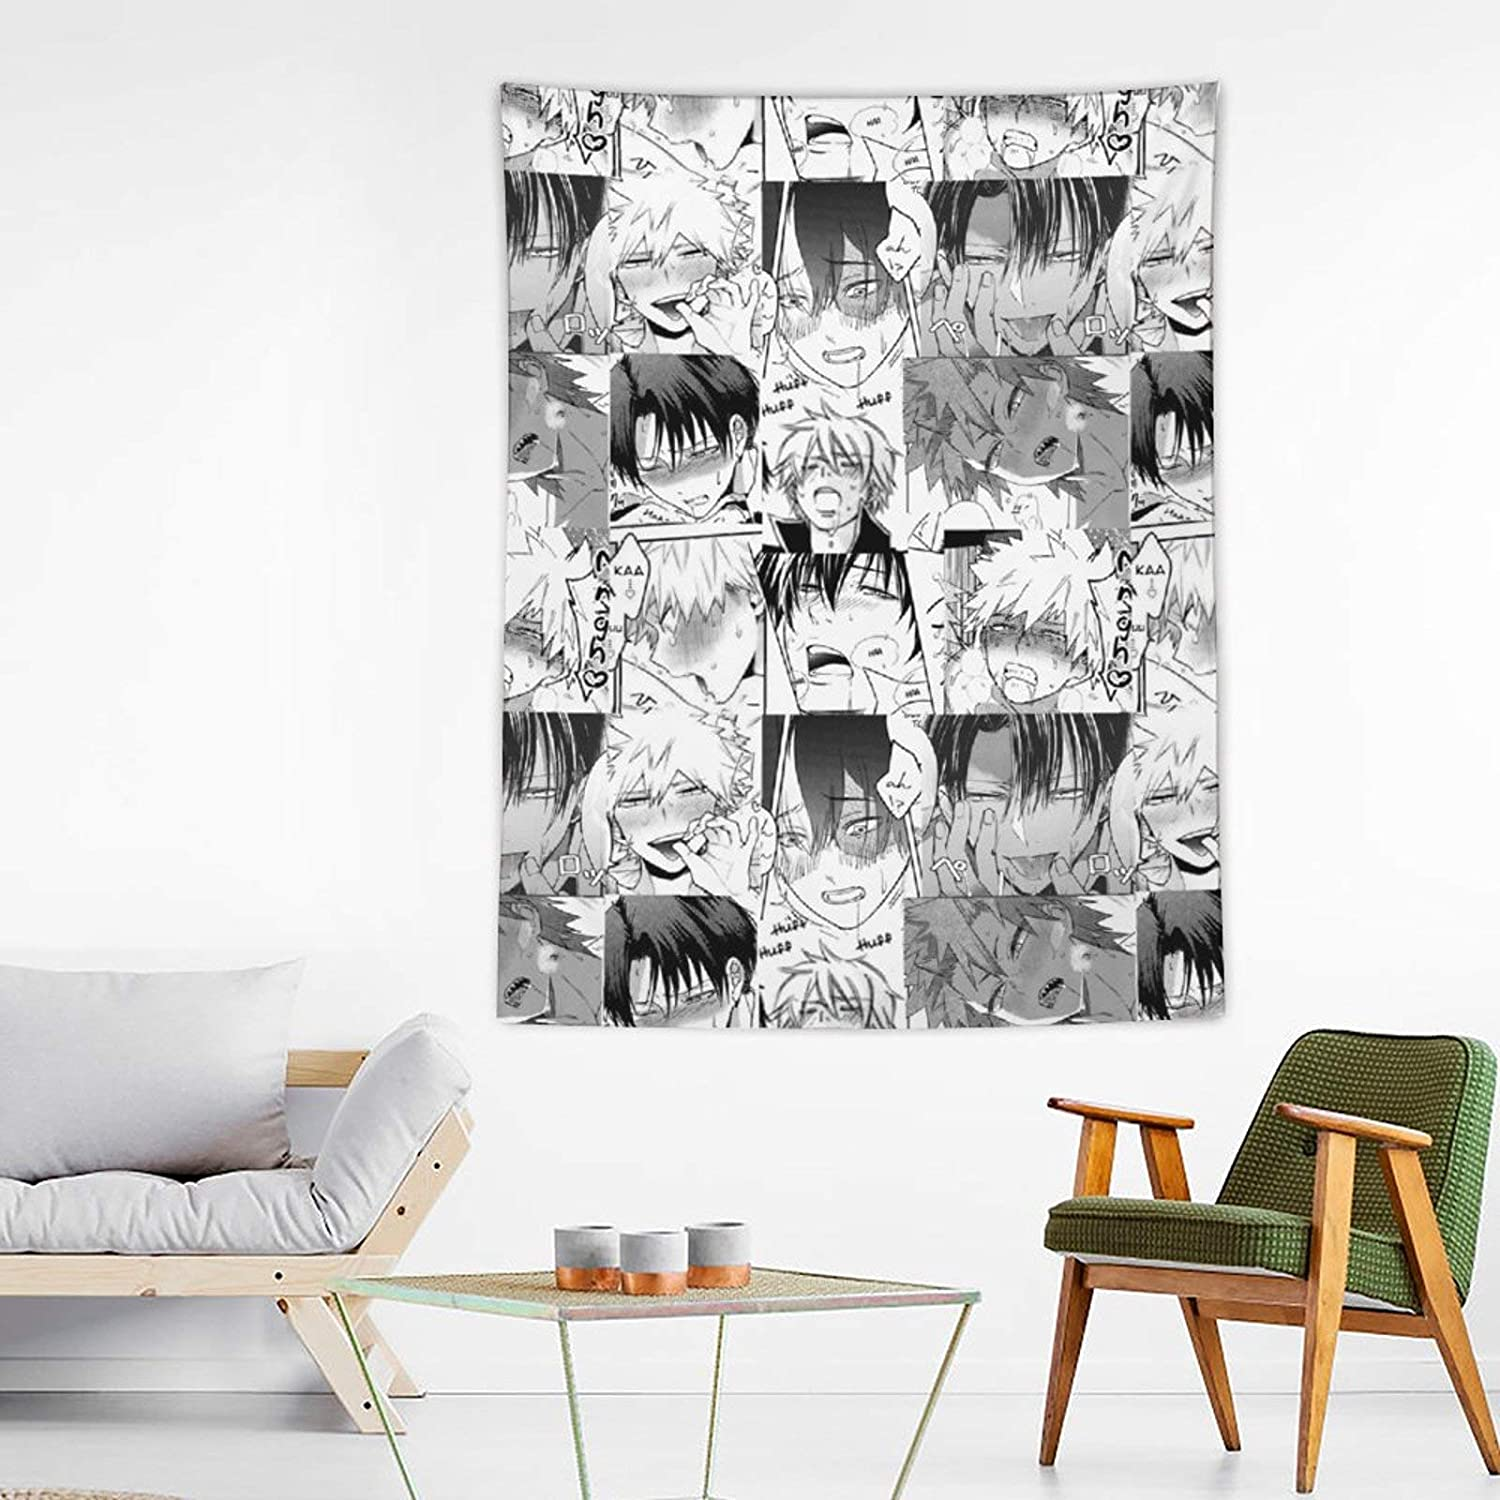 xiaojun ComicsYaoi Guys Ahegao Hentai Collage Tapestry Wall Hanging Wave Tapestries for Anime Home Decoration Bedroom Decor Living Room Door Curtain Balcony Sheer Room 60×80 inches